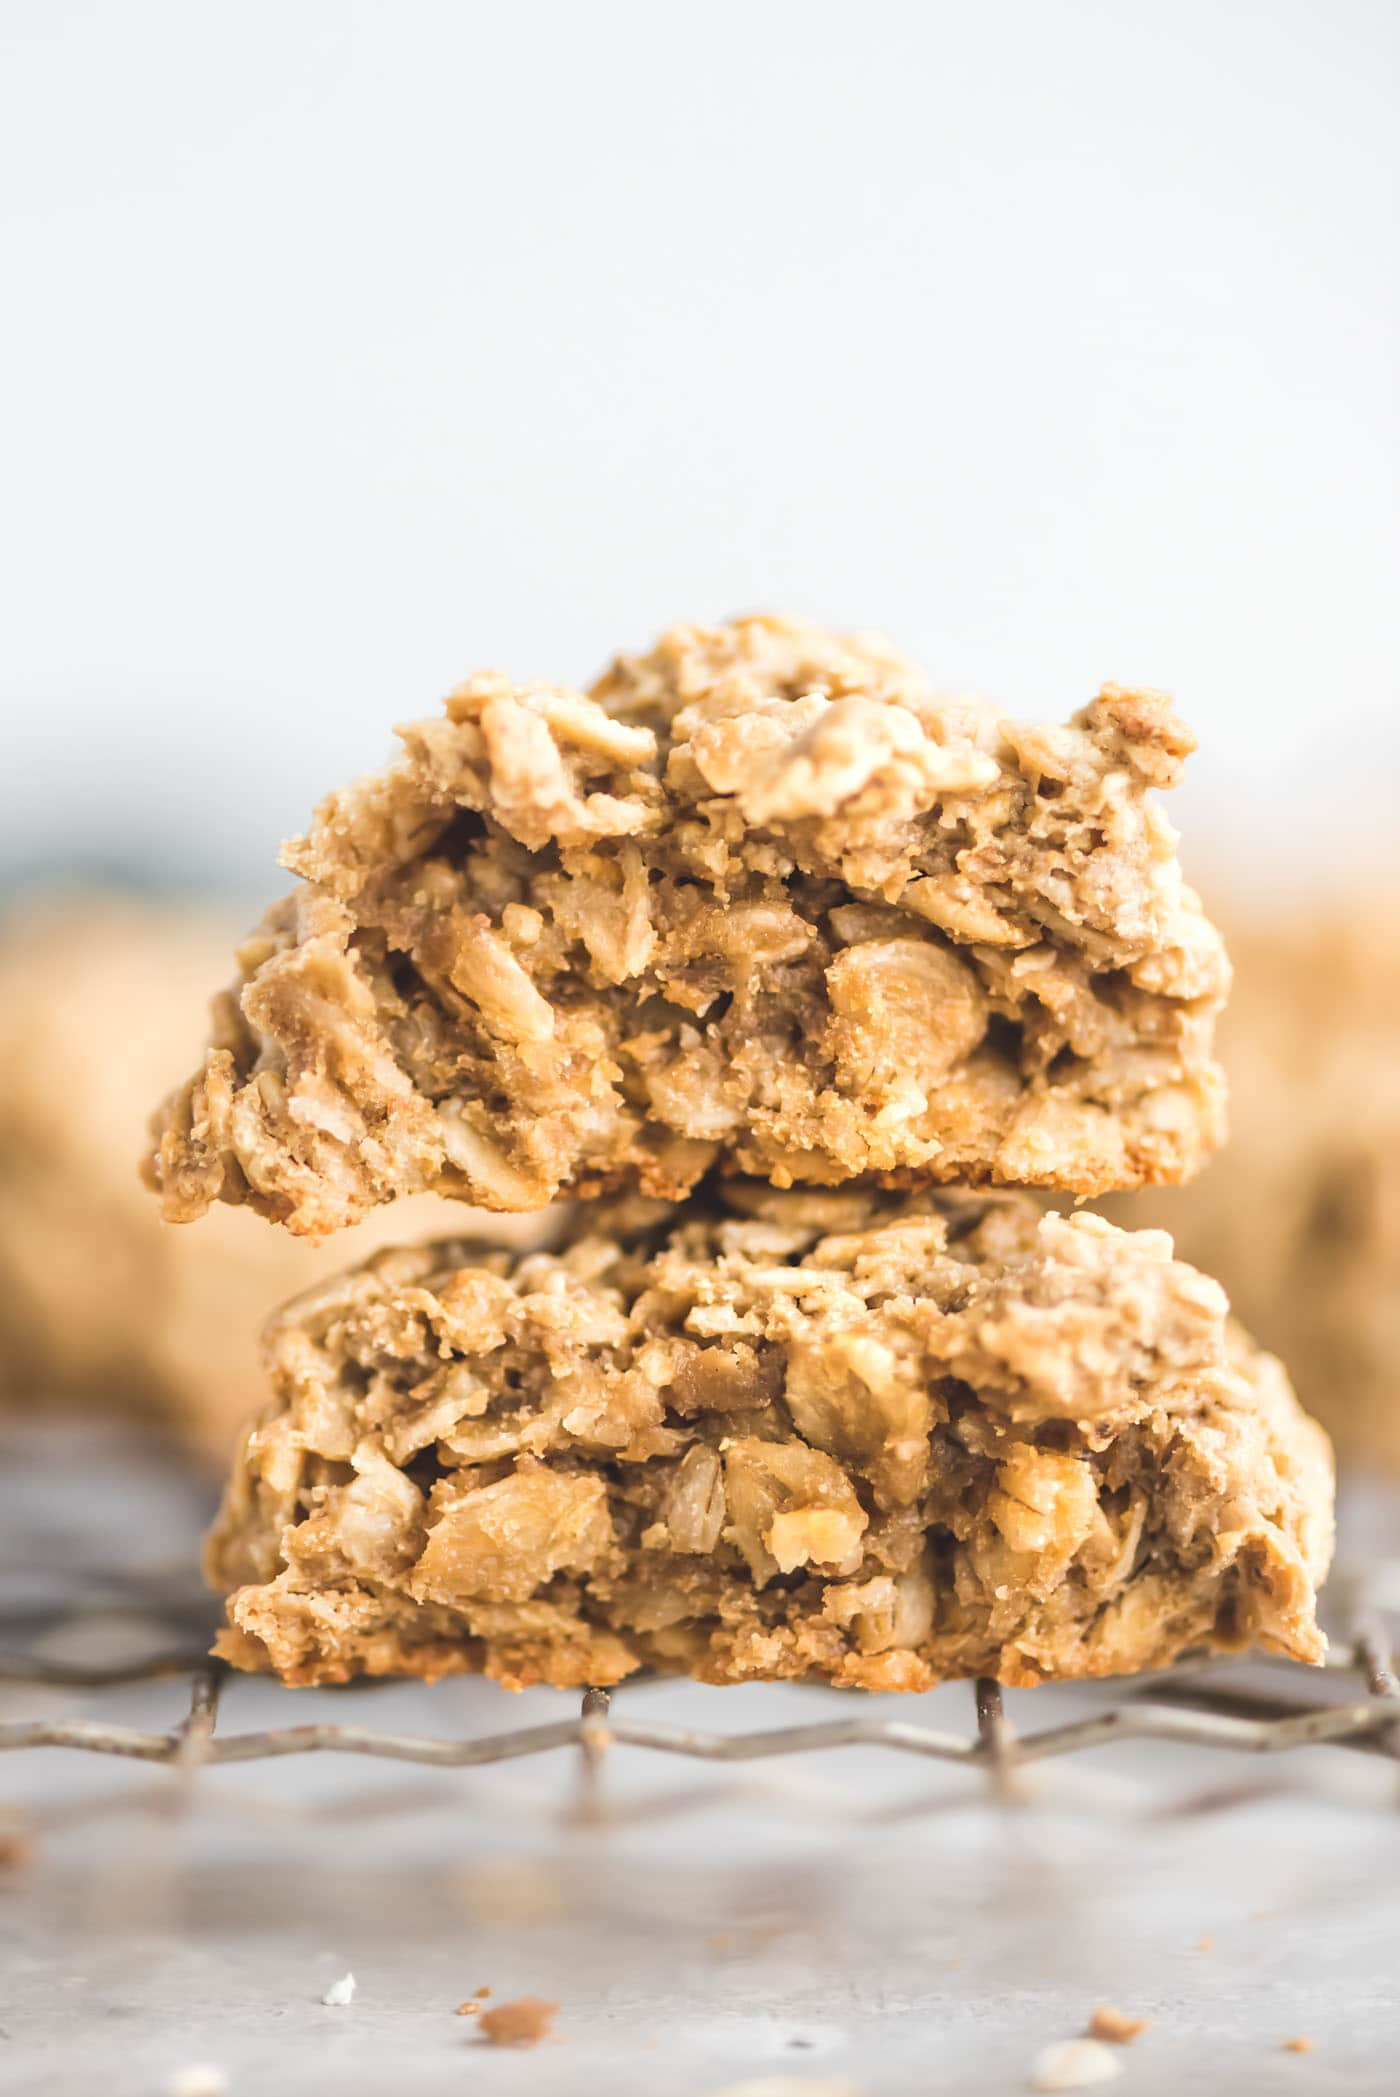 Easy Vegan Gluten-Free Oatmeal Cookie Recipe - Running on Real Food